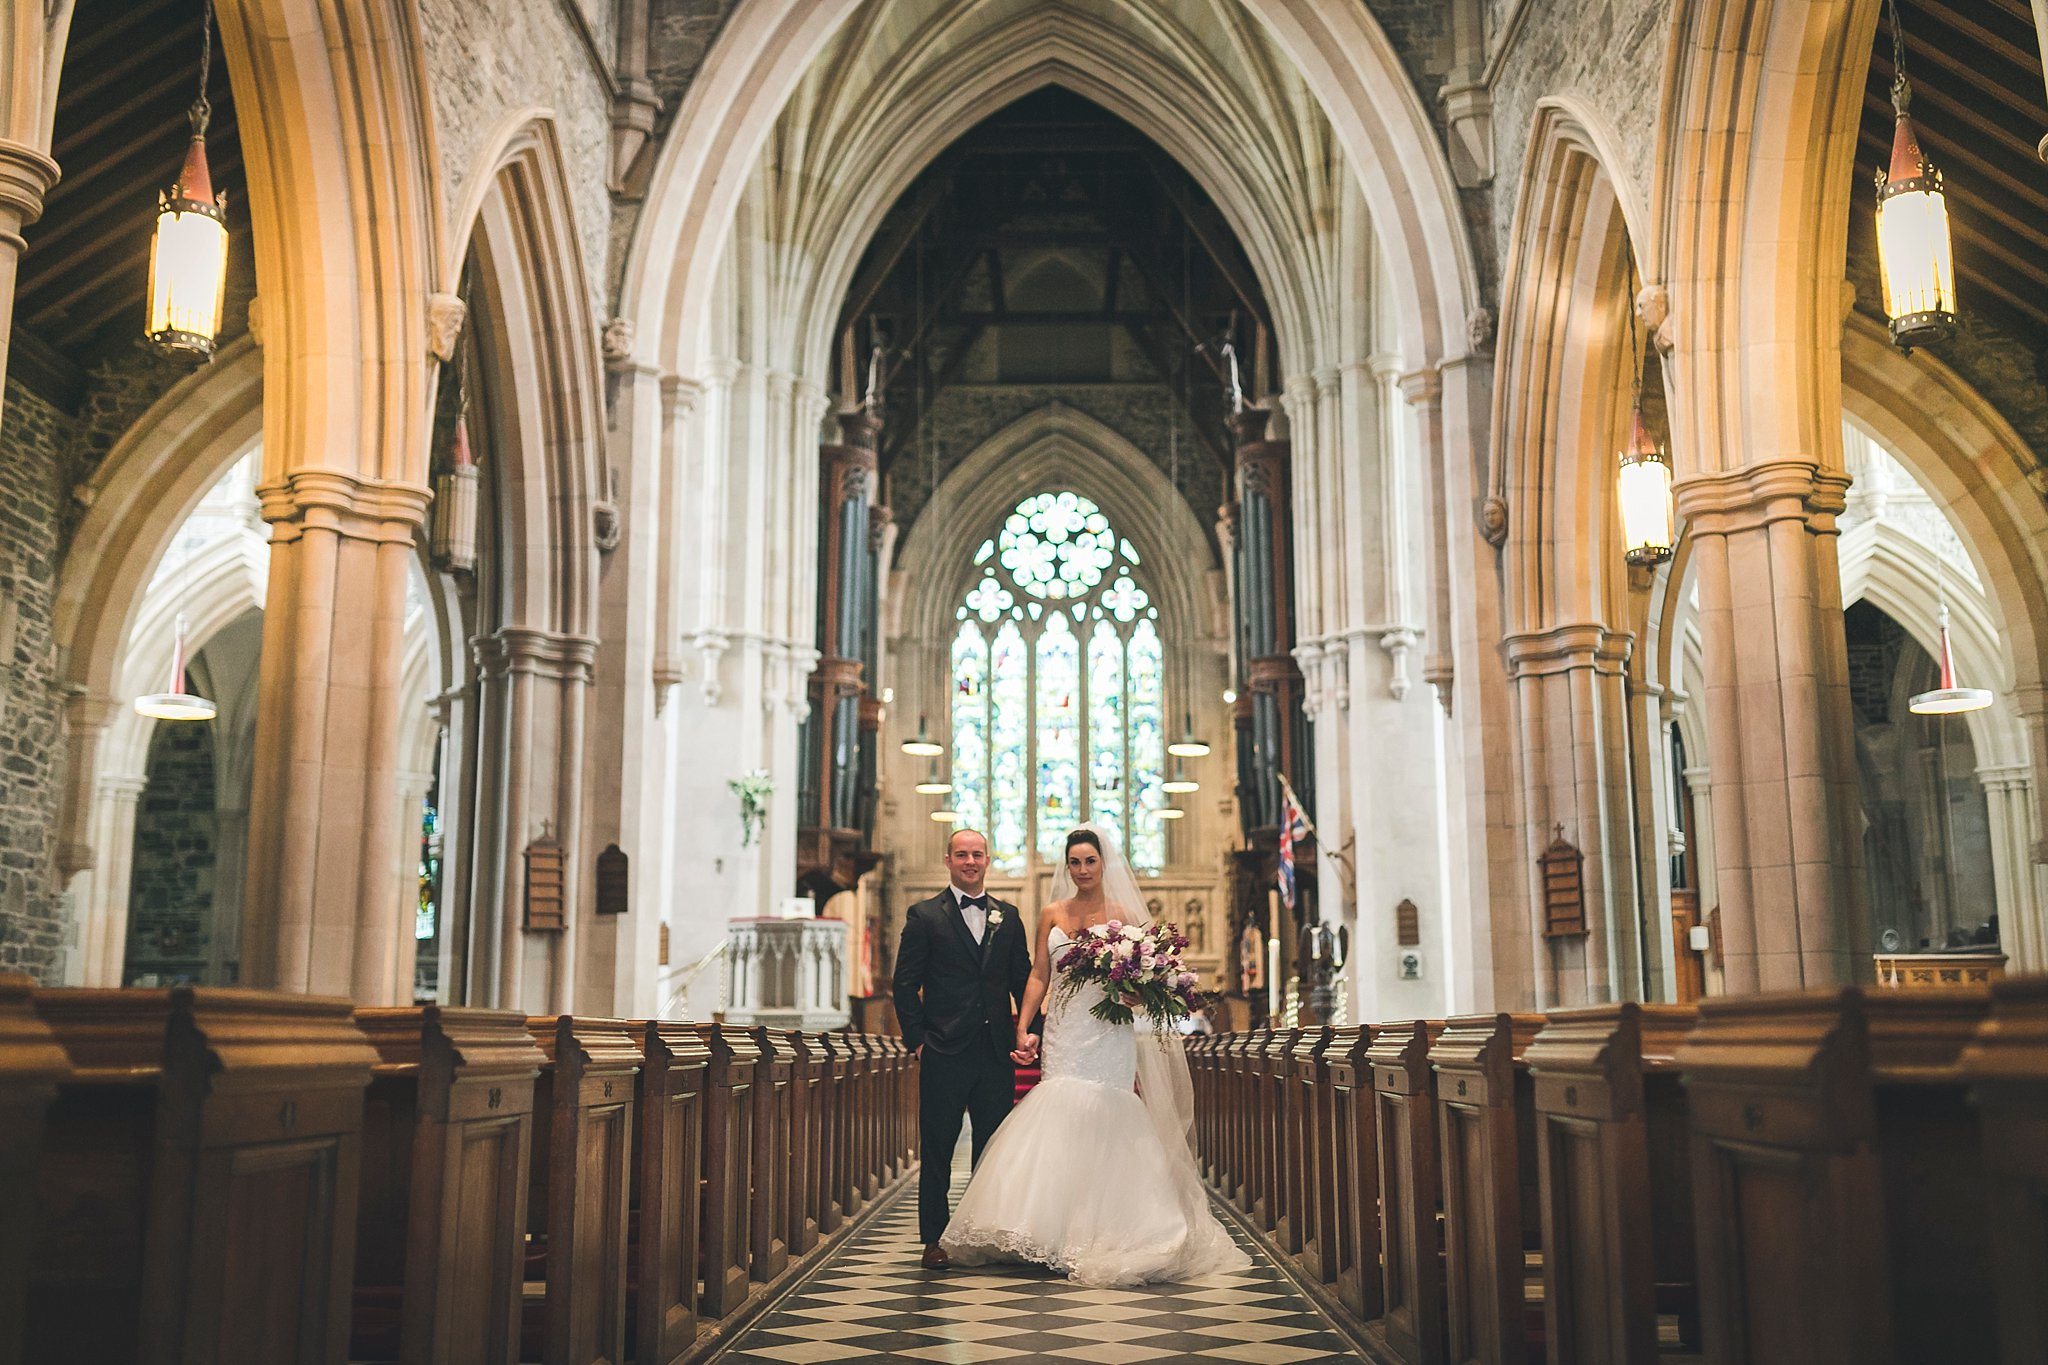 Bride and Groom portrait in the Anglican Cathedral during a St. John's, Newfoundland wedding.